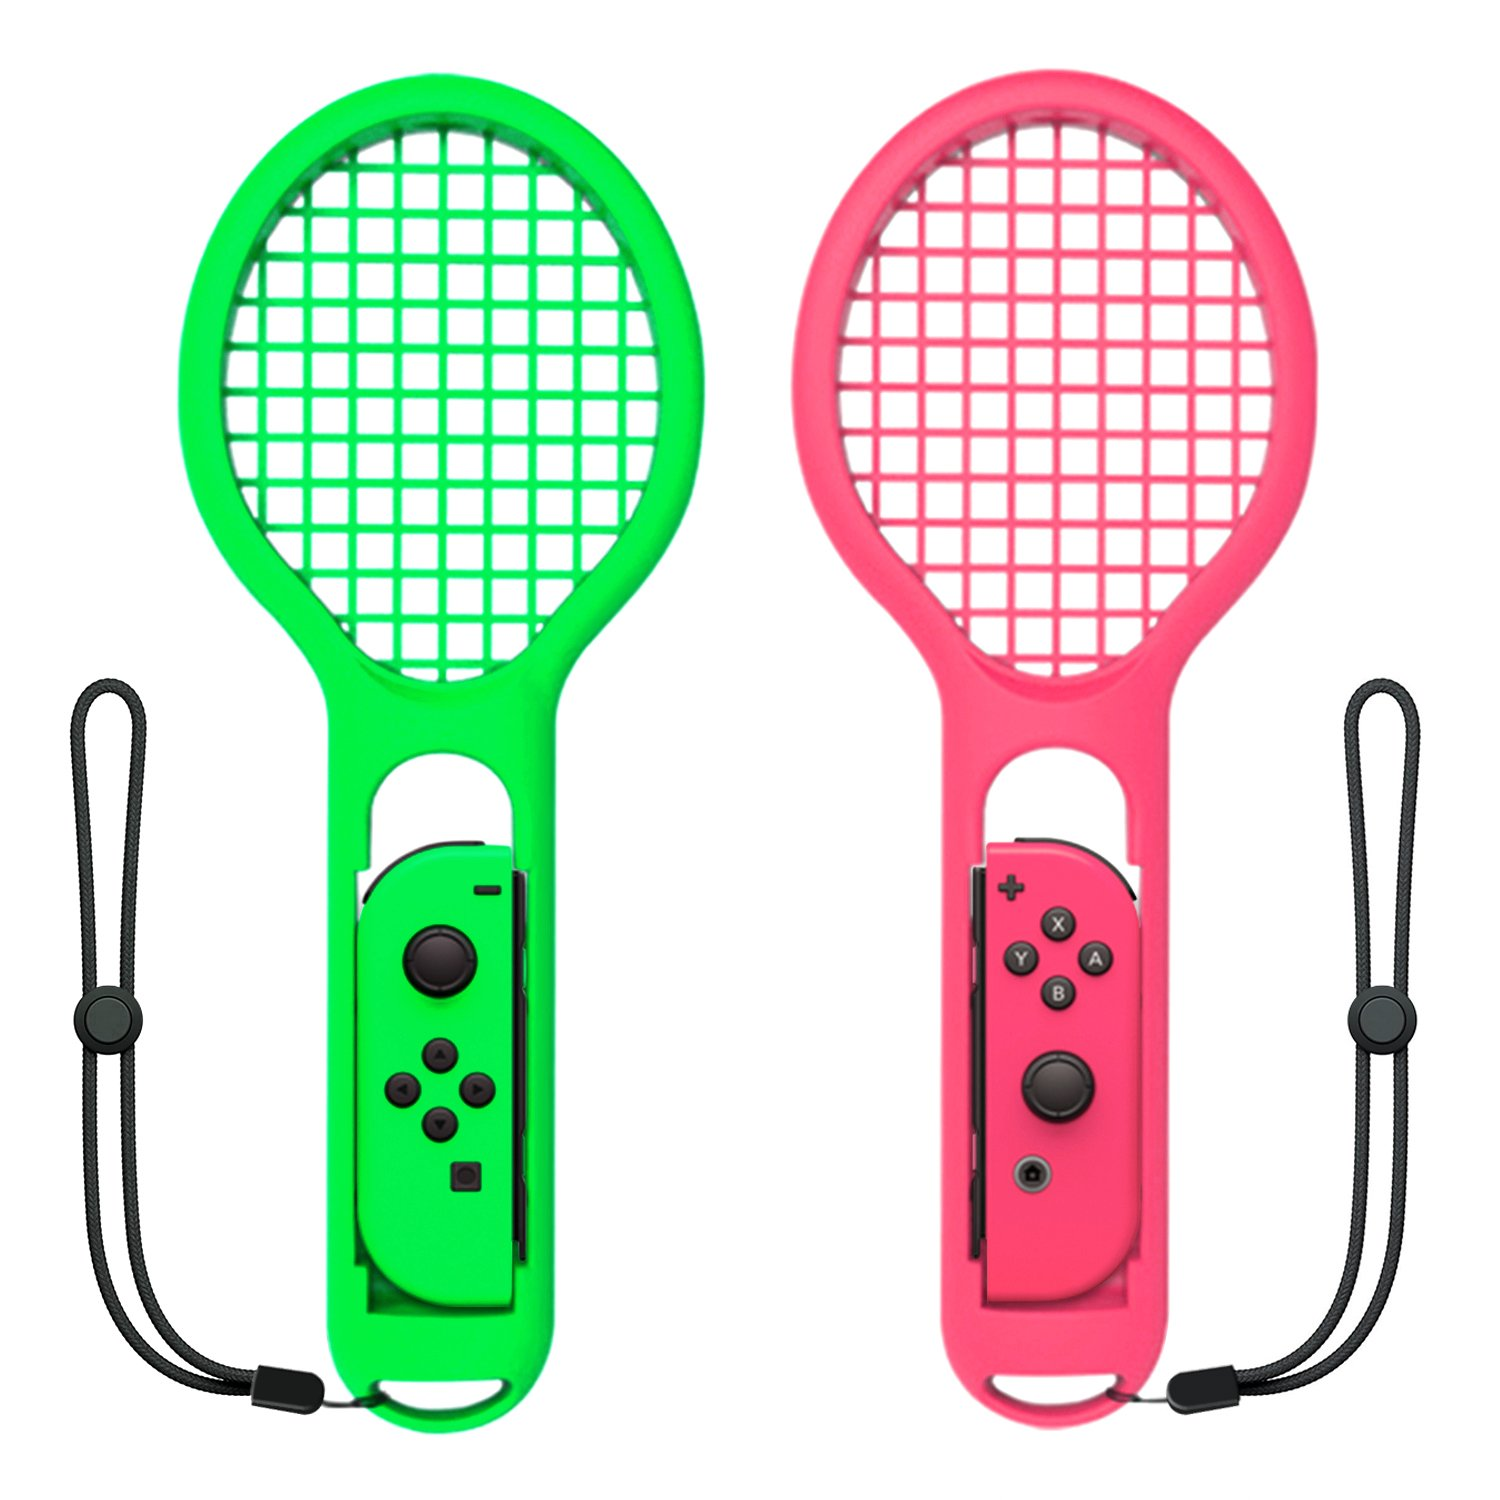 Tennis Racket Compatible with Nintendo Switch Joy-Con Controller,Accessories Compatible with Nintendo Switch Game Mario Tennis Aces Green and Pink - Only Use for Swing Mode on Nintendo Switch by FYOUNG